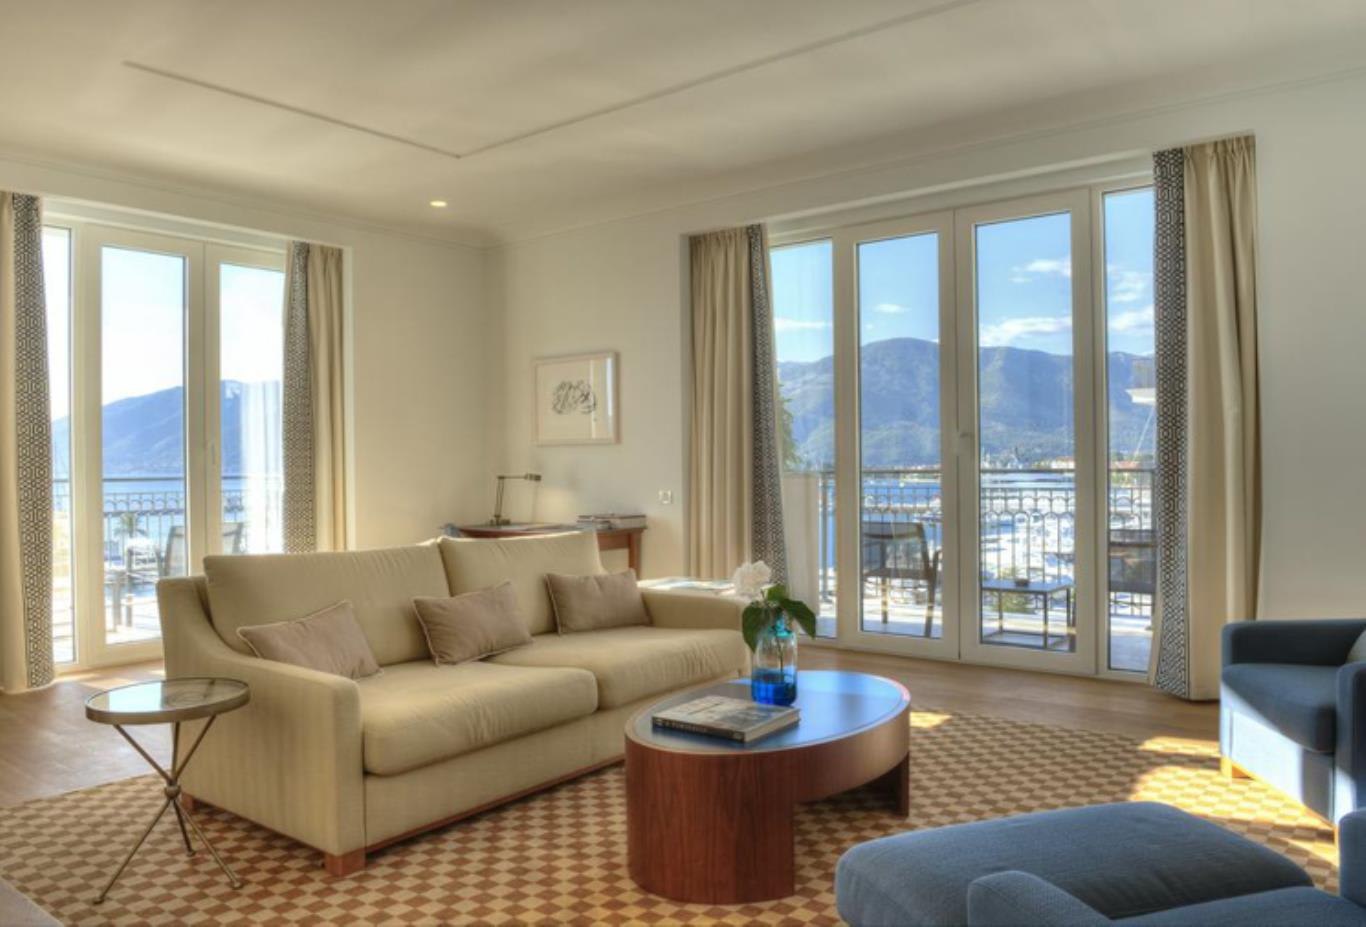 One bedroom suite with seaview living room